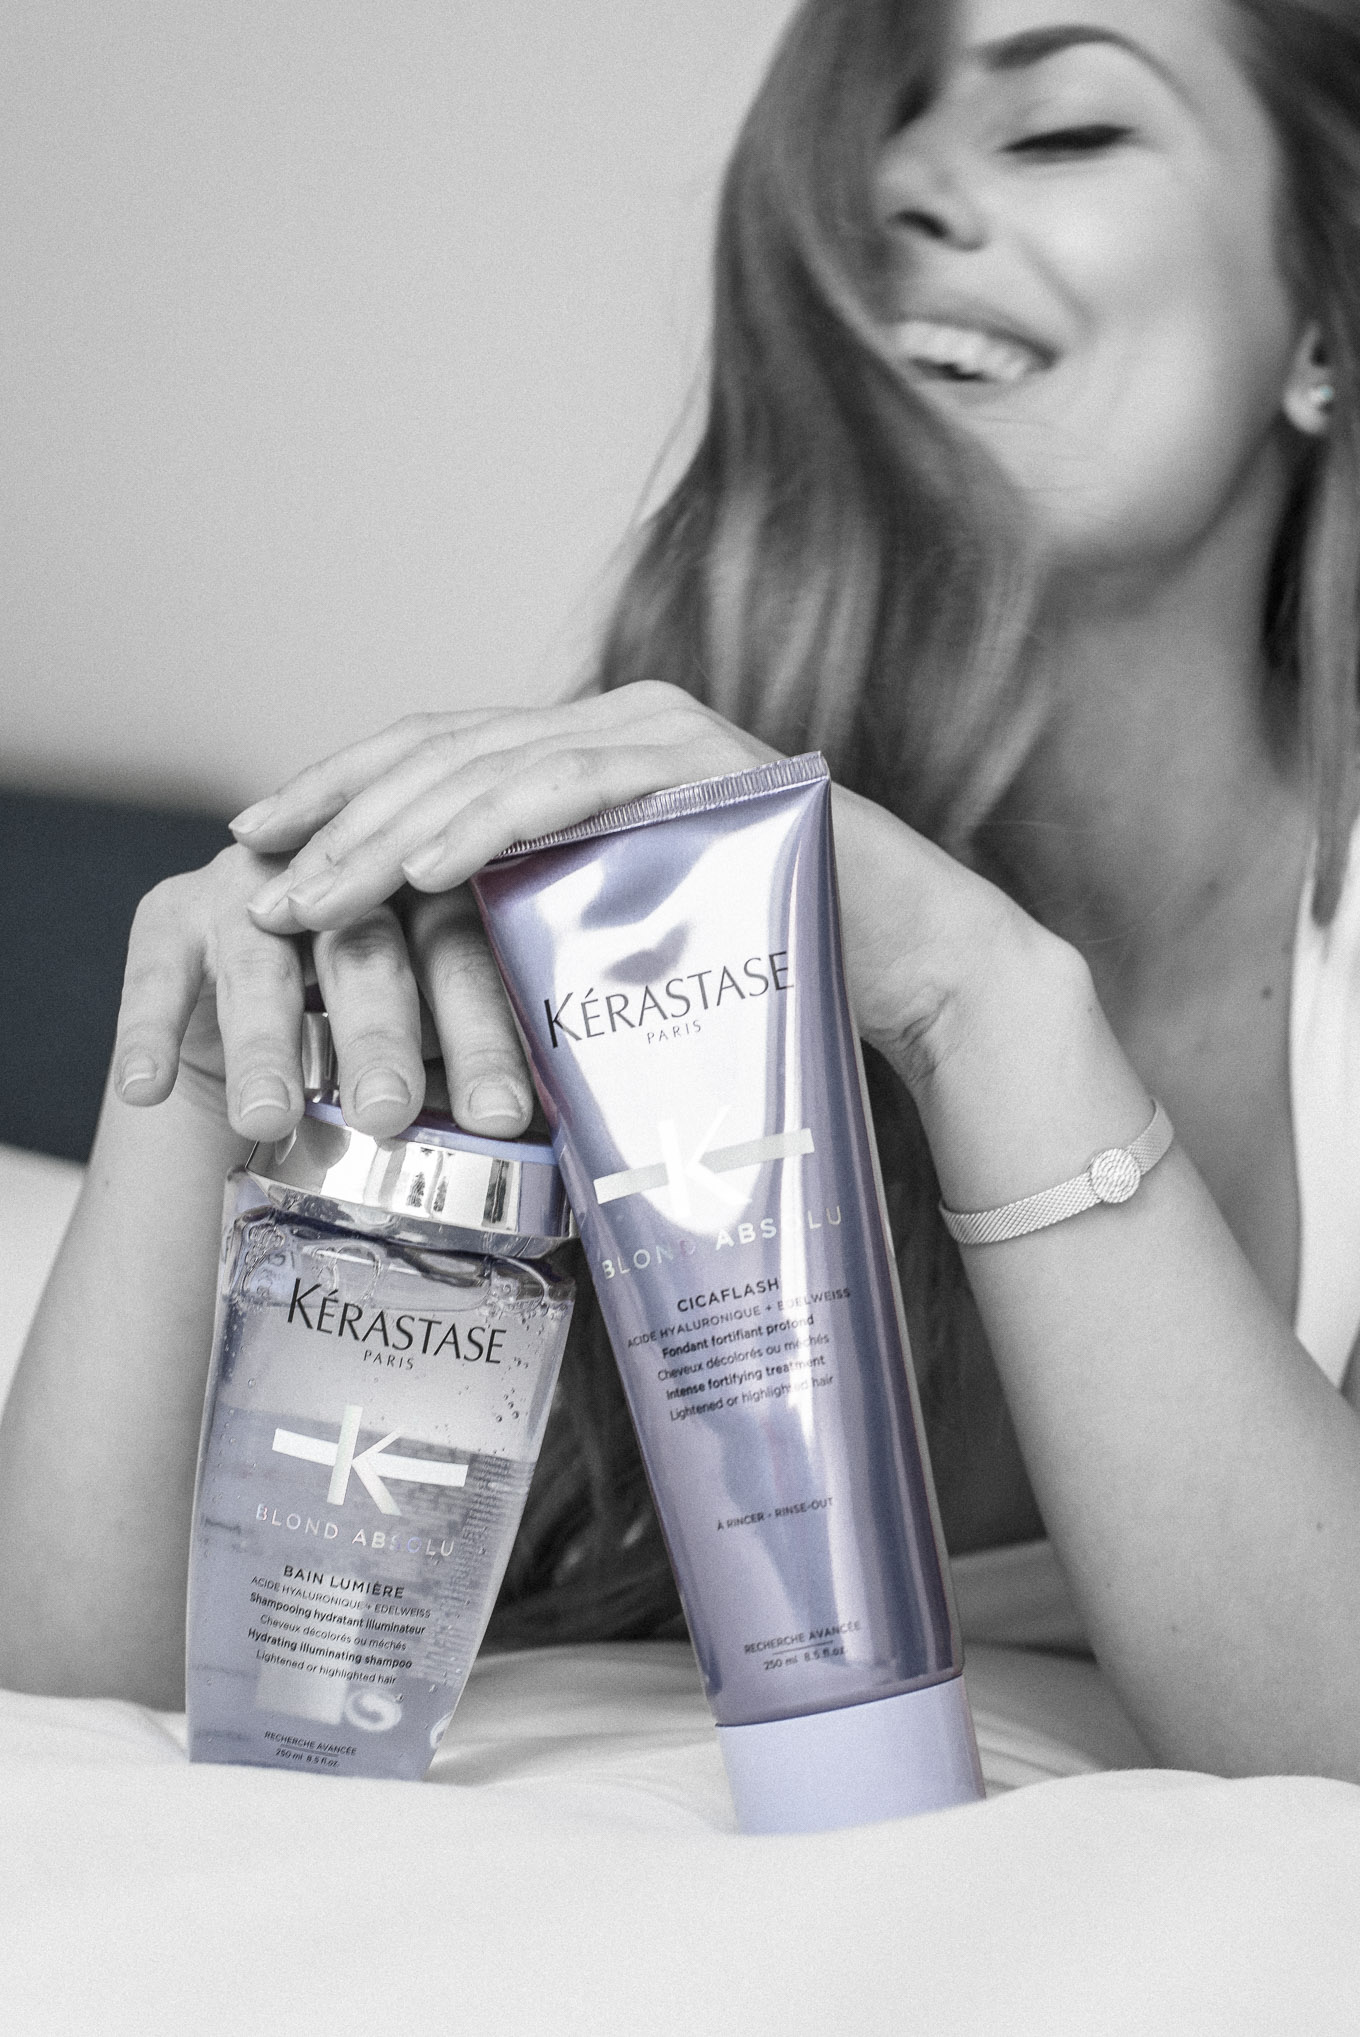 Kerastase series for blondes